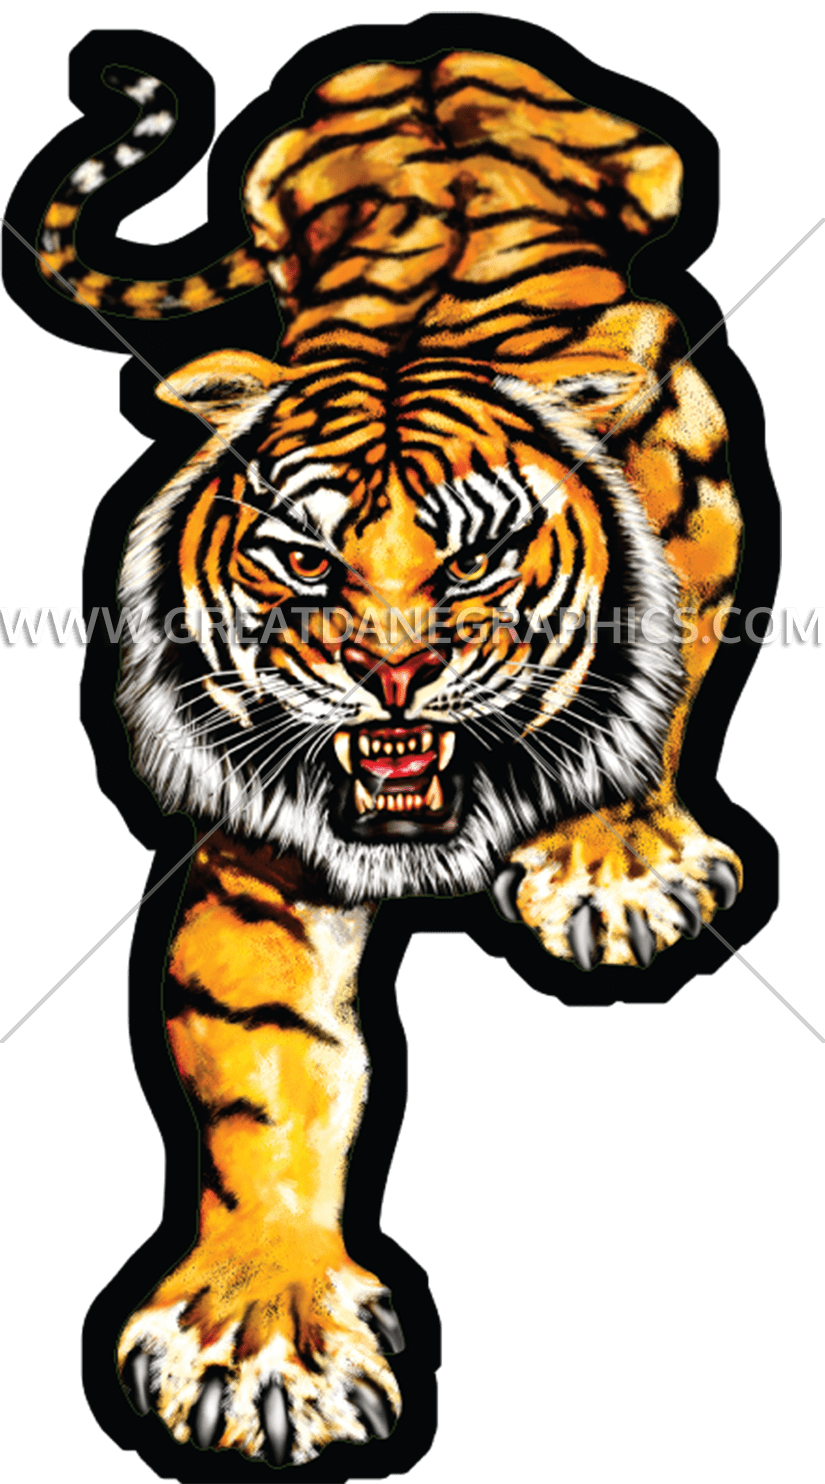 Clipart tiger file. Full production ready artwork